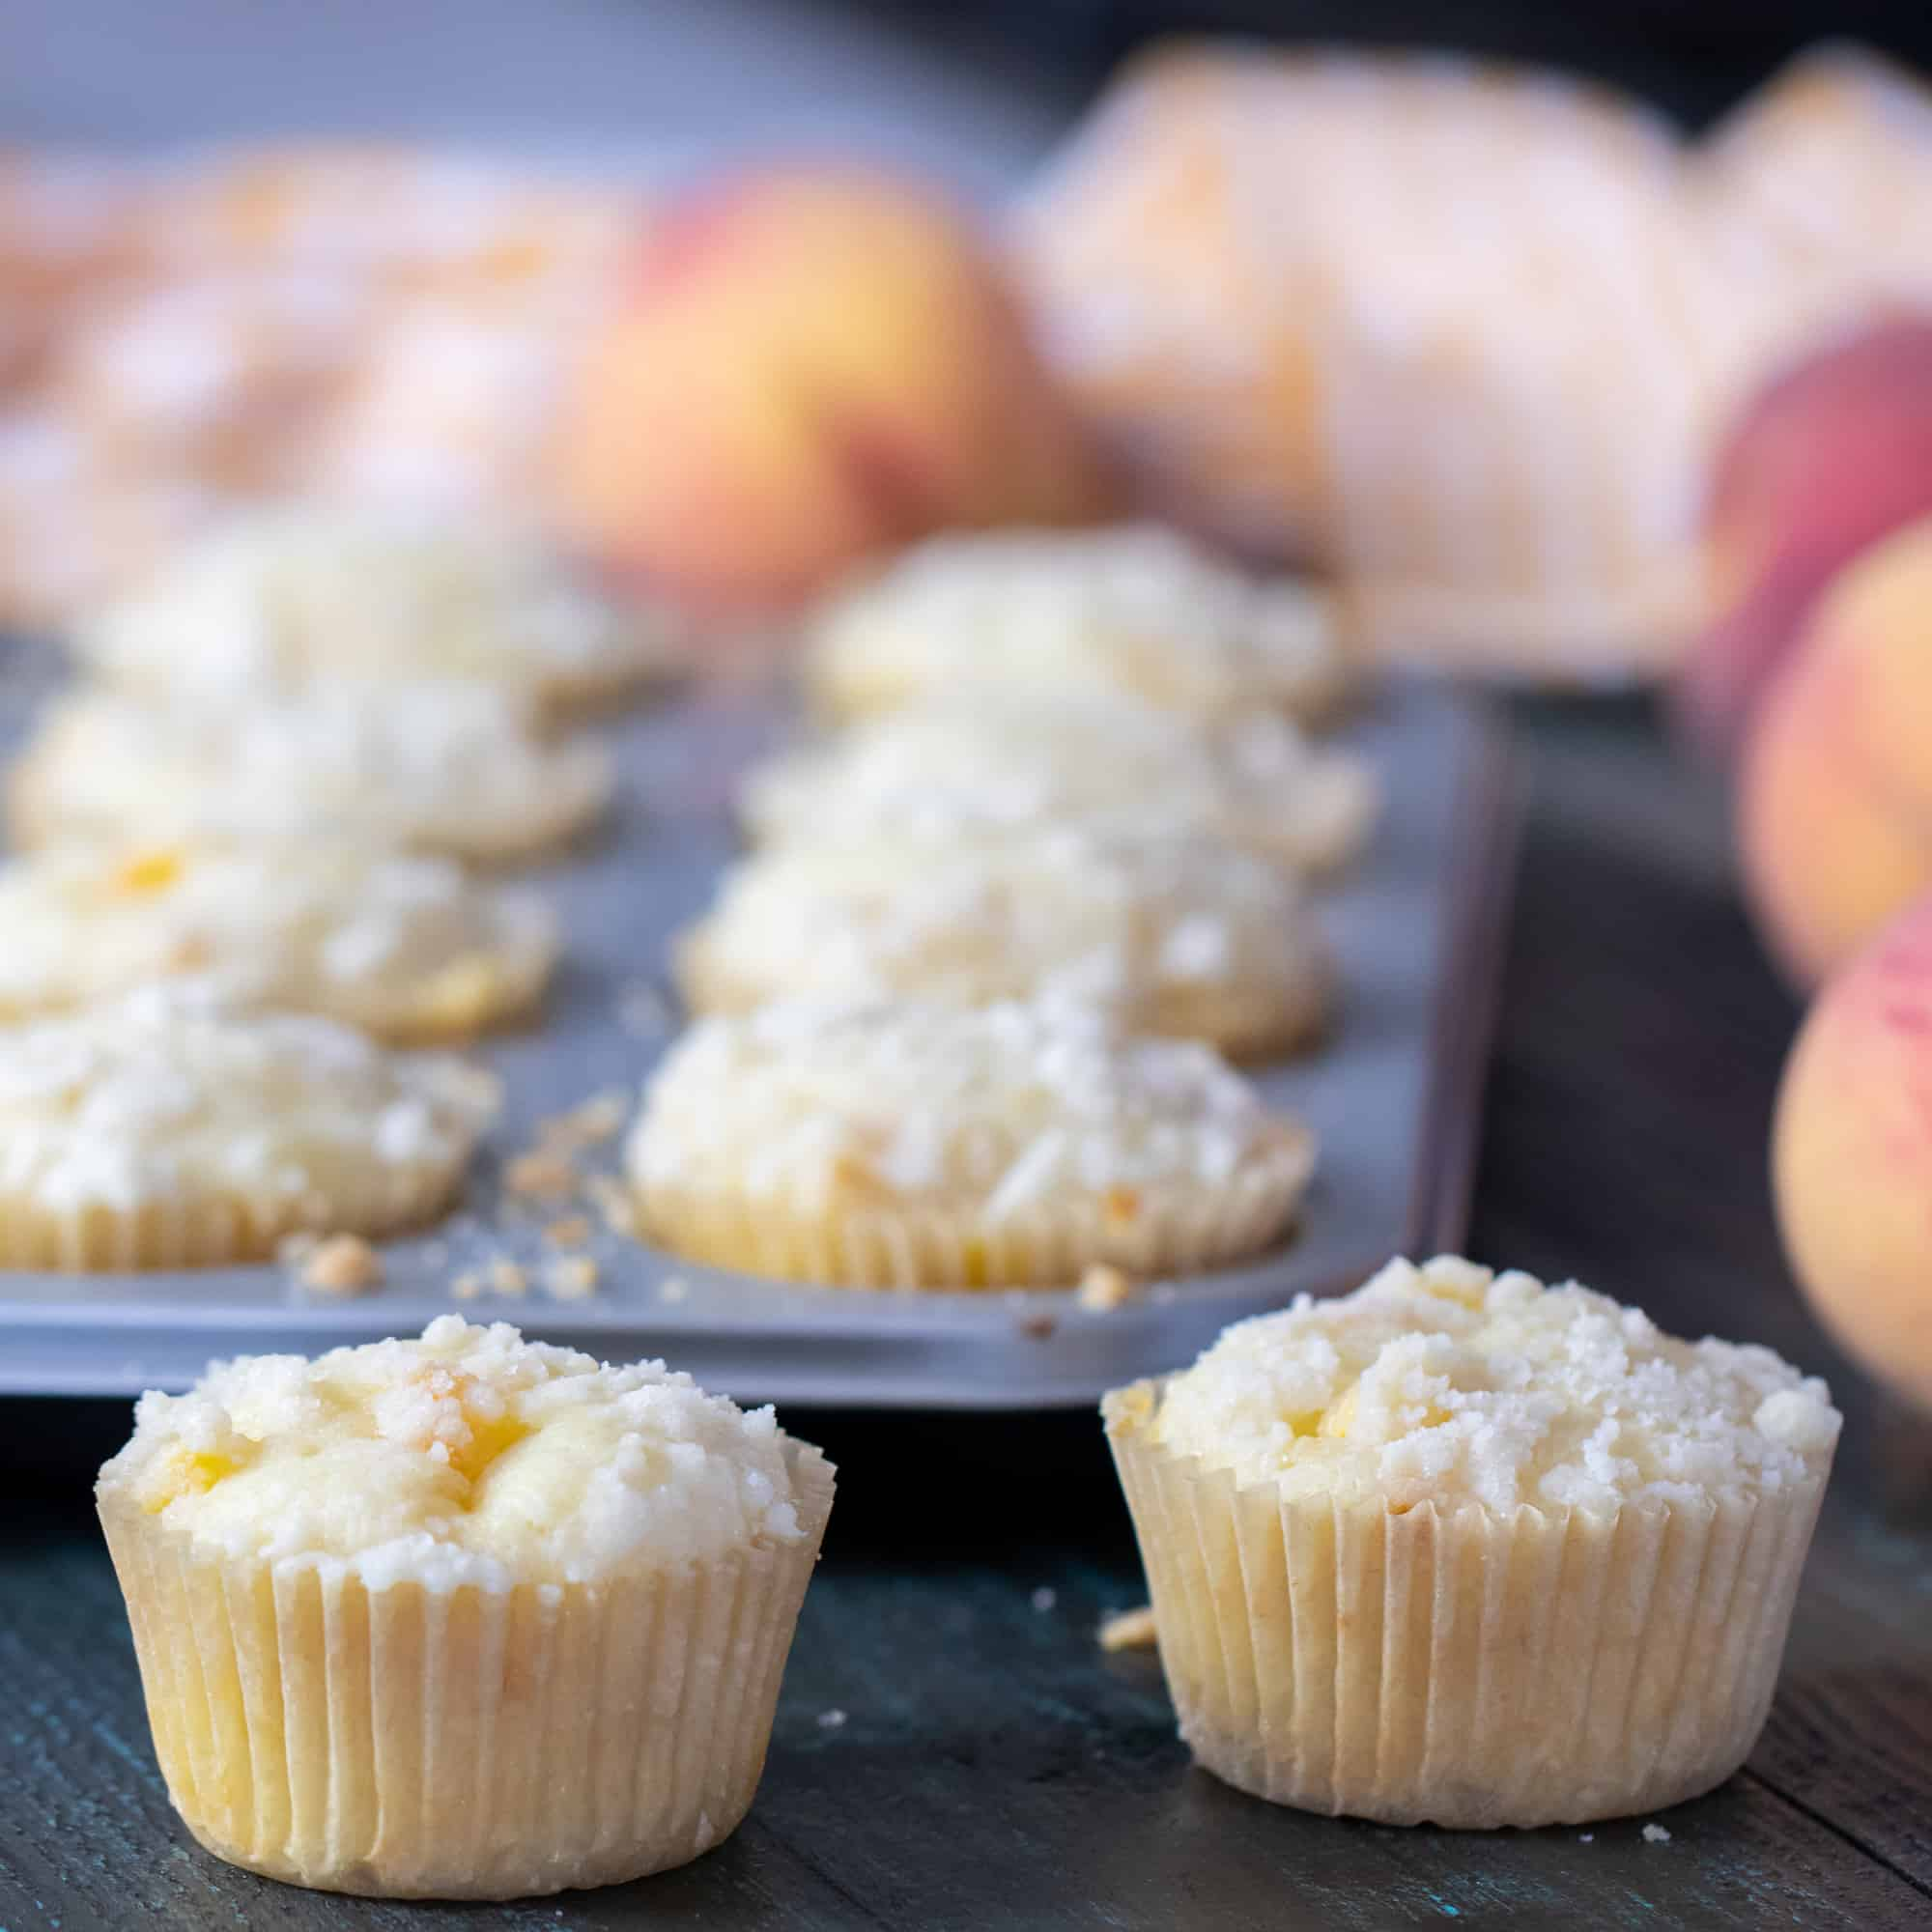 An easy recipe for peach cobbler muffins that is simple and delicious. Fresh Ontario peaches in a light fluffy muffin with a buttery crumble topping.